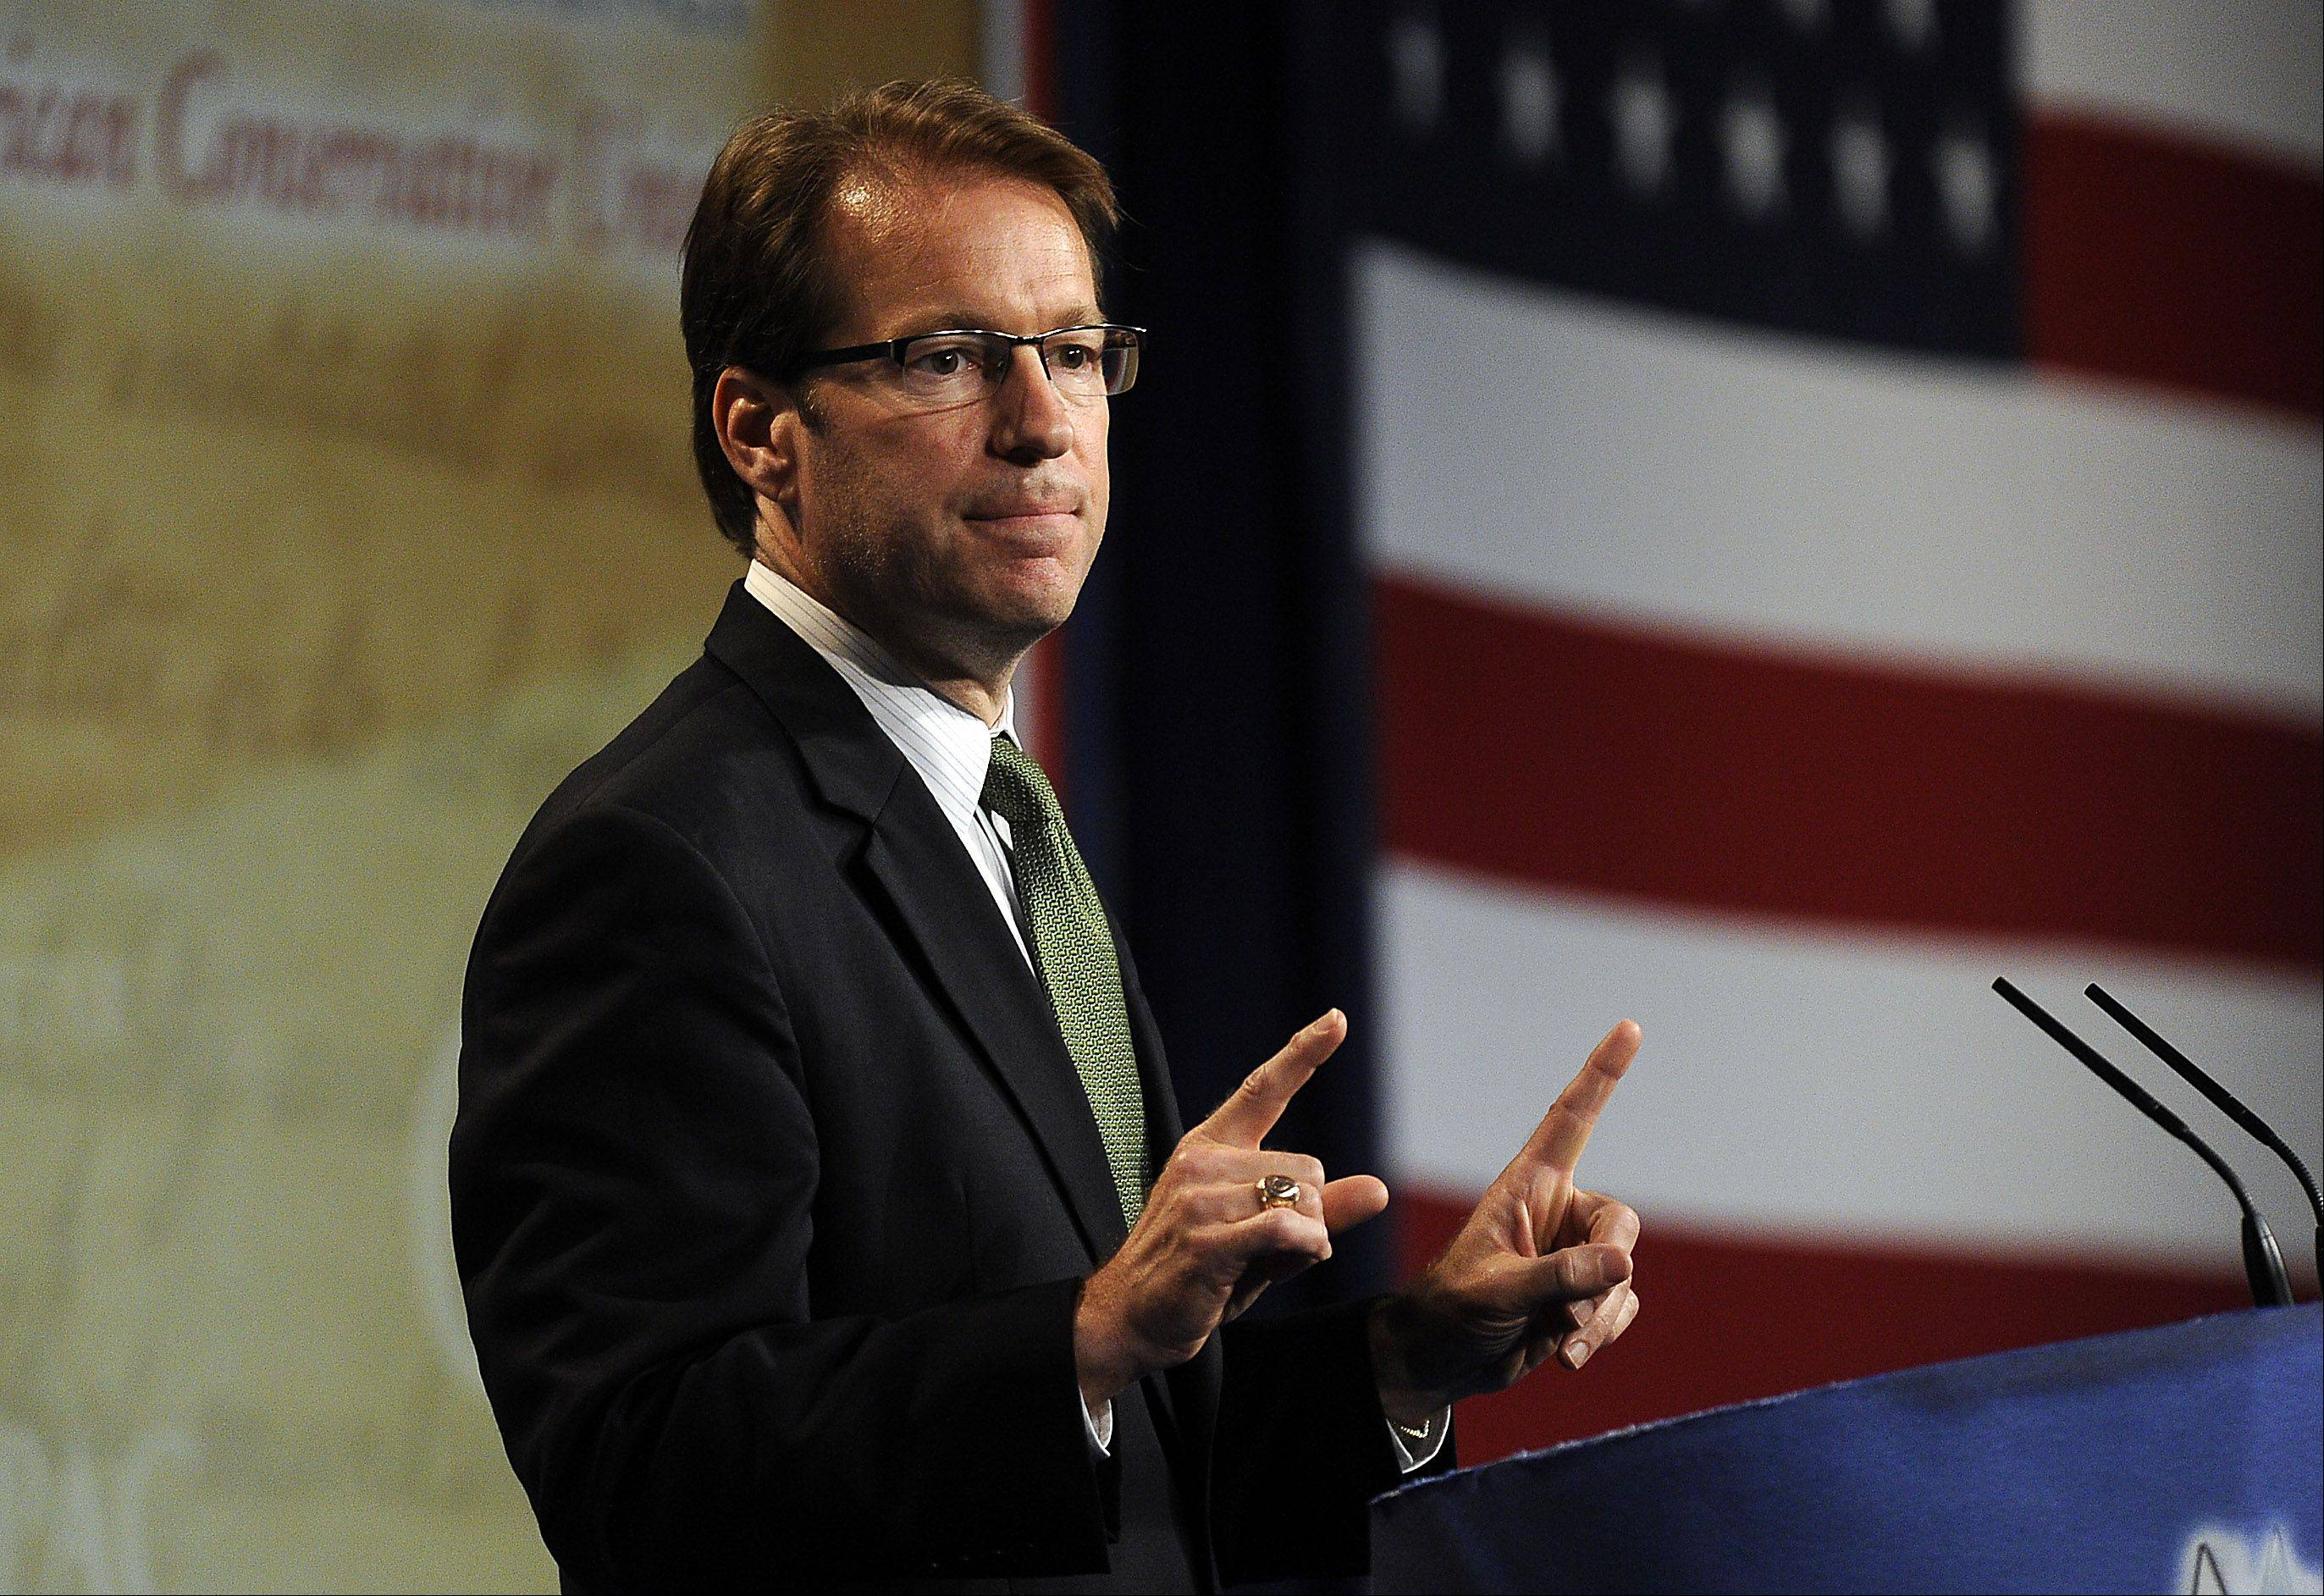 U.S. Representative Peter Roskam speaks to the Conservative Political Action Conference at the Stephens Convention Center in Rosemont on Friday.